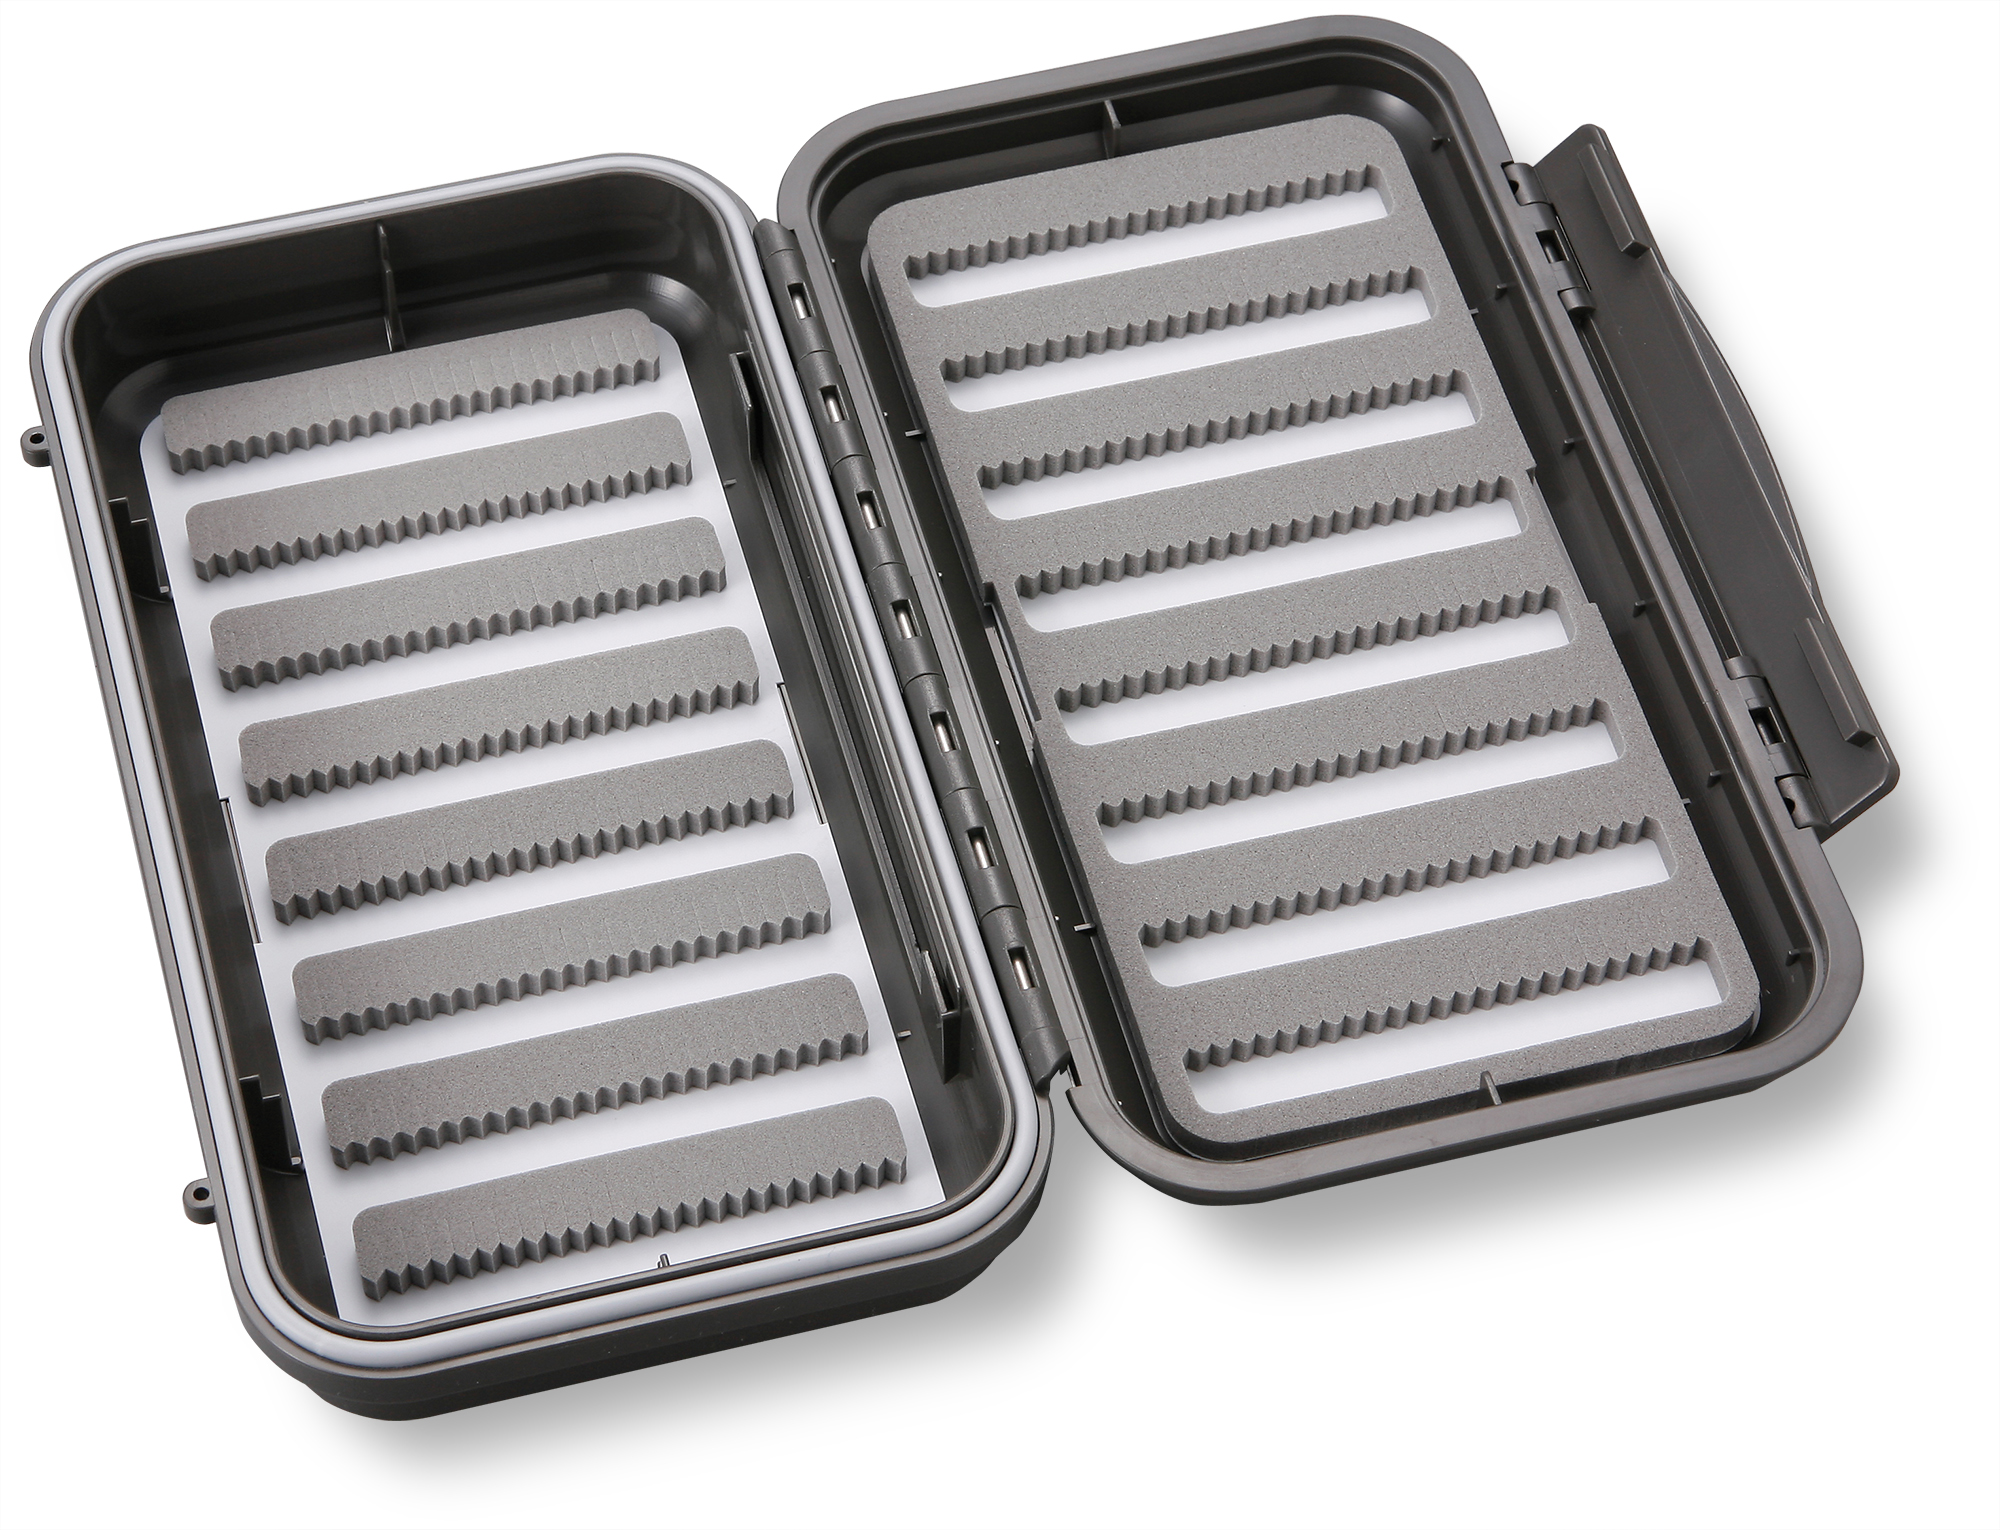 Large 16-Row Waterproof Fly Box